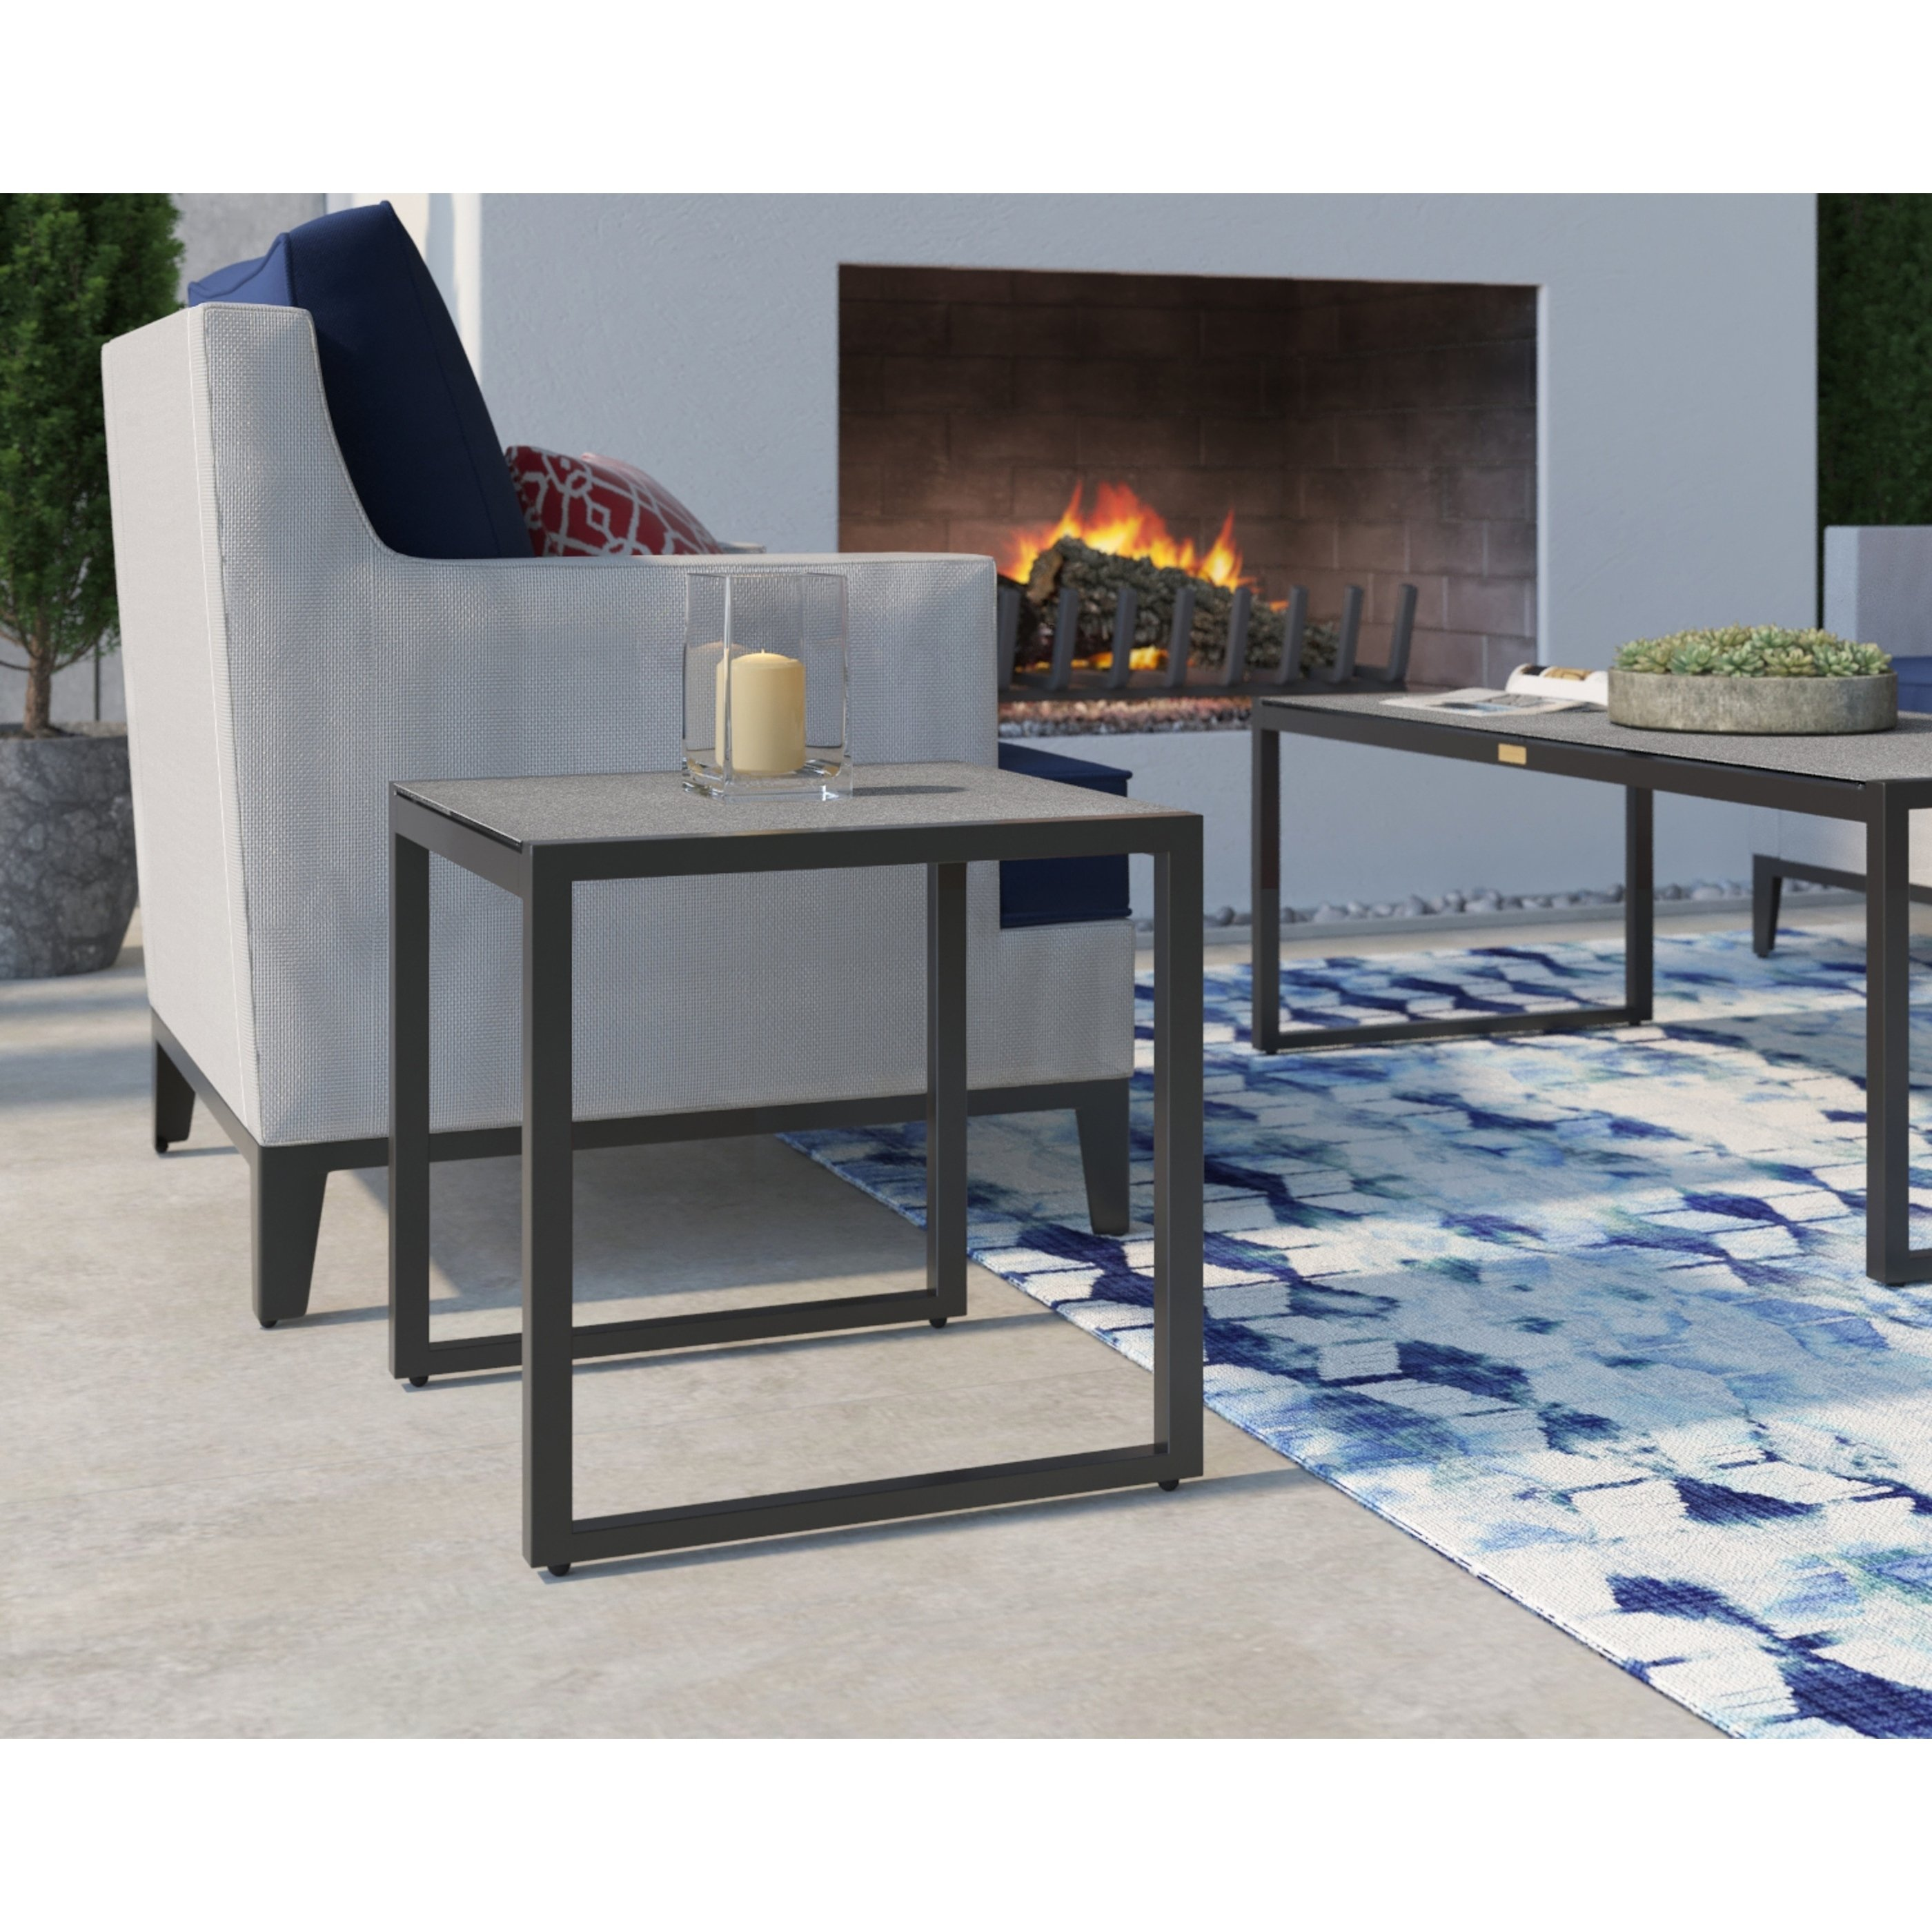 tommy hilfiger hampton outdoor side table with pebbled glass natural gray and chairs free shipping today folding patio round oak coffee small dining leaf egg chair bunnings